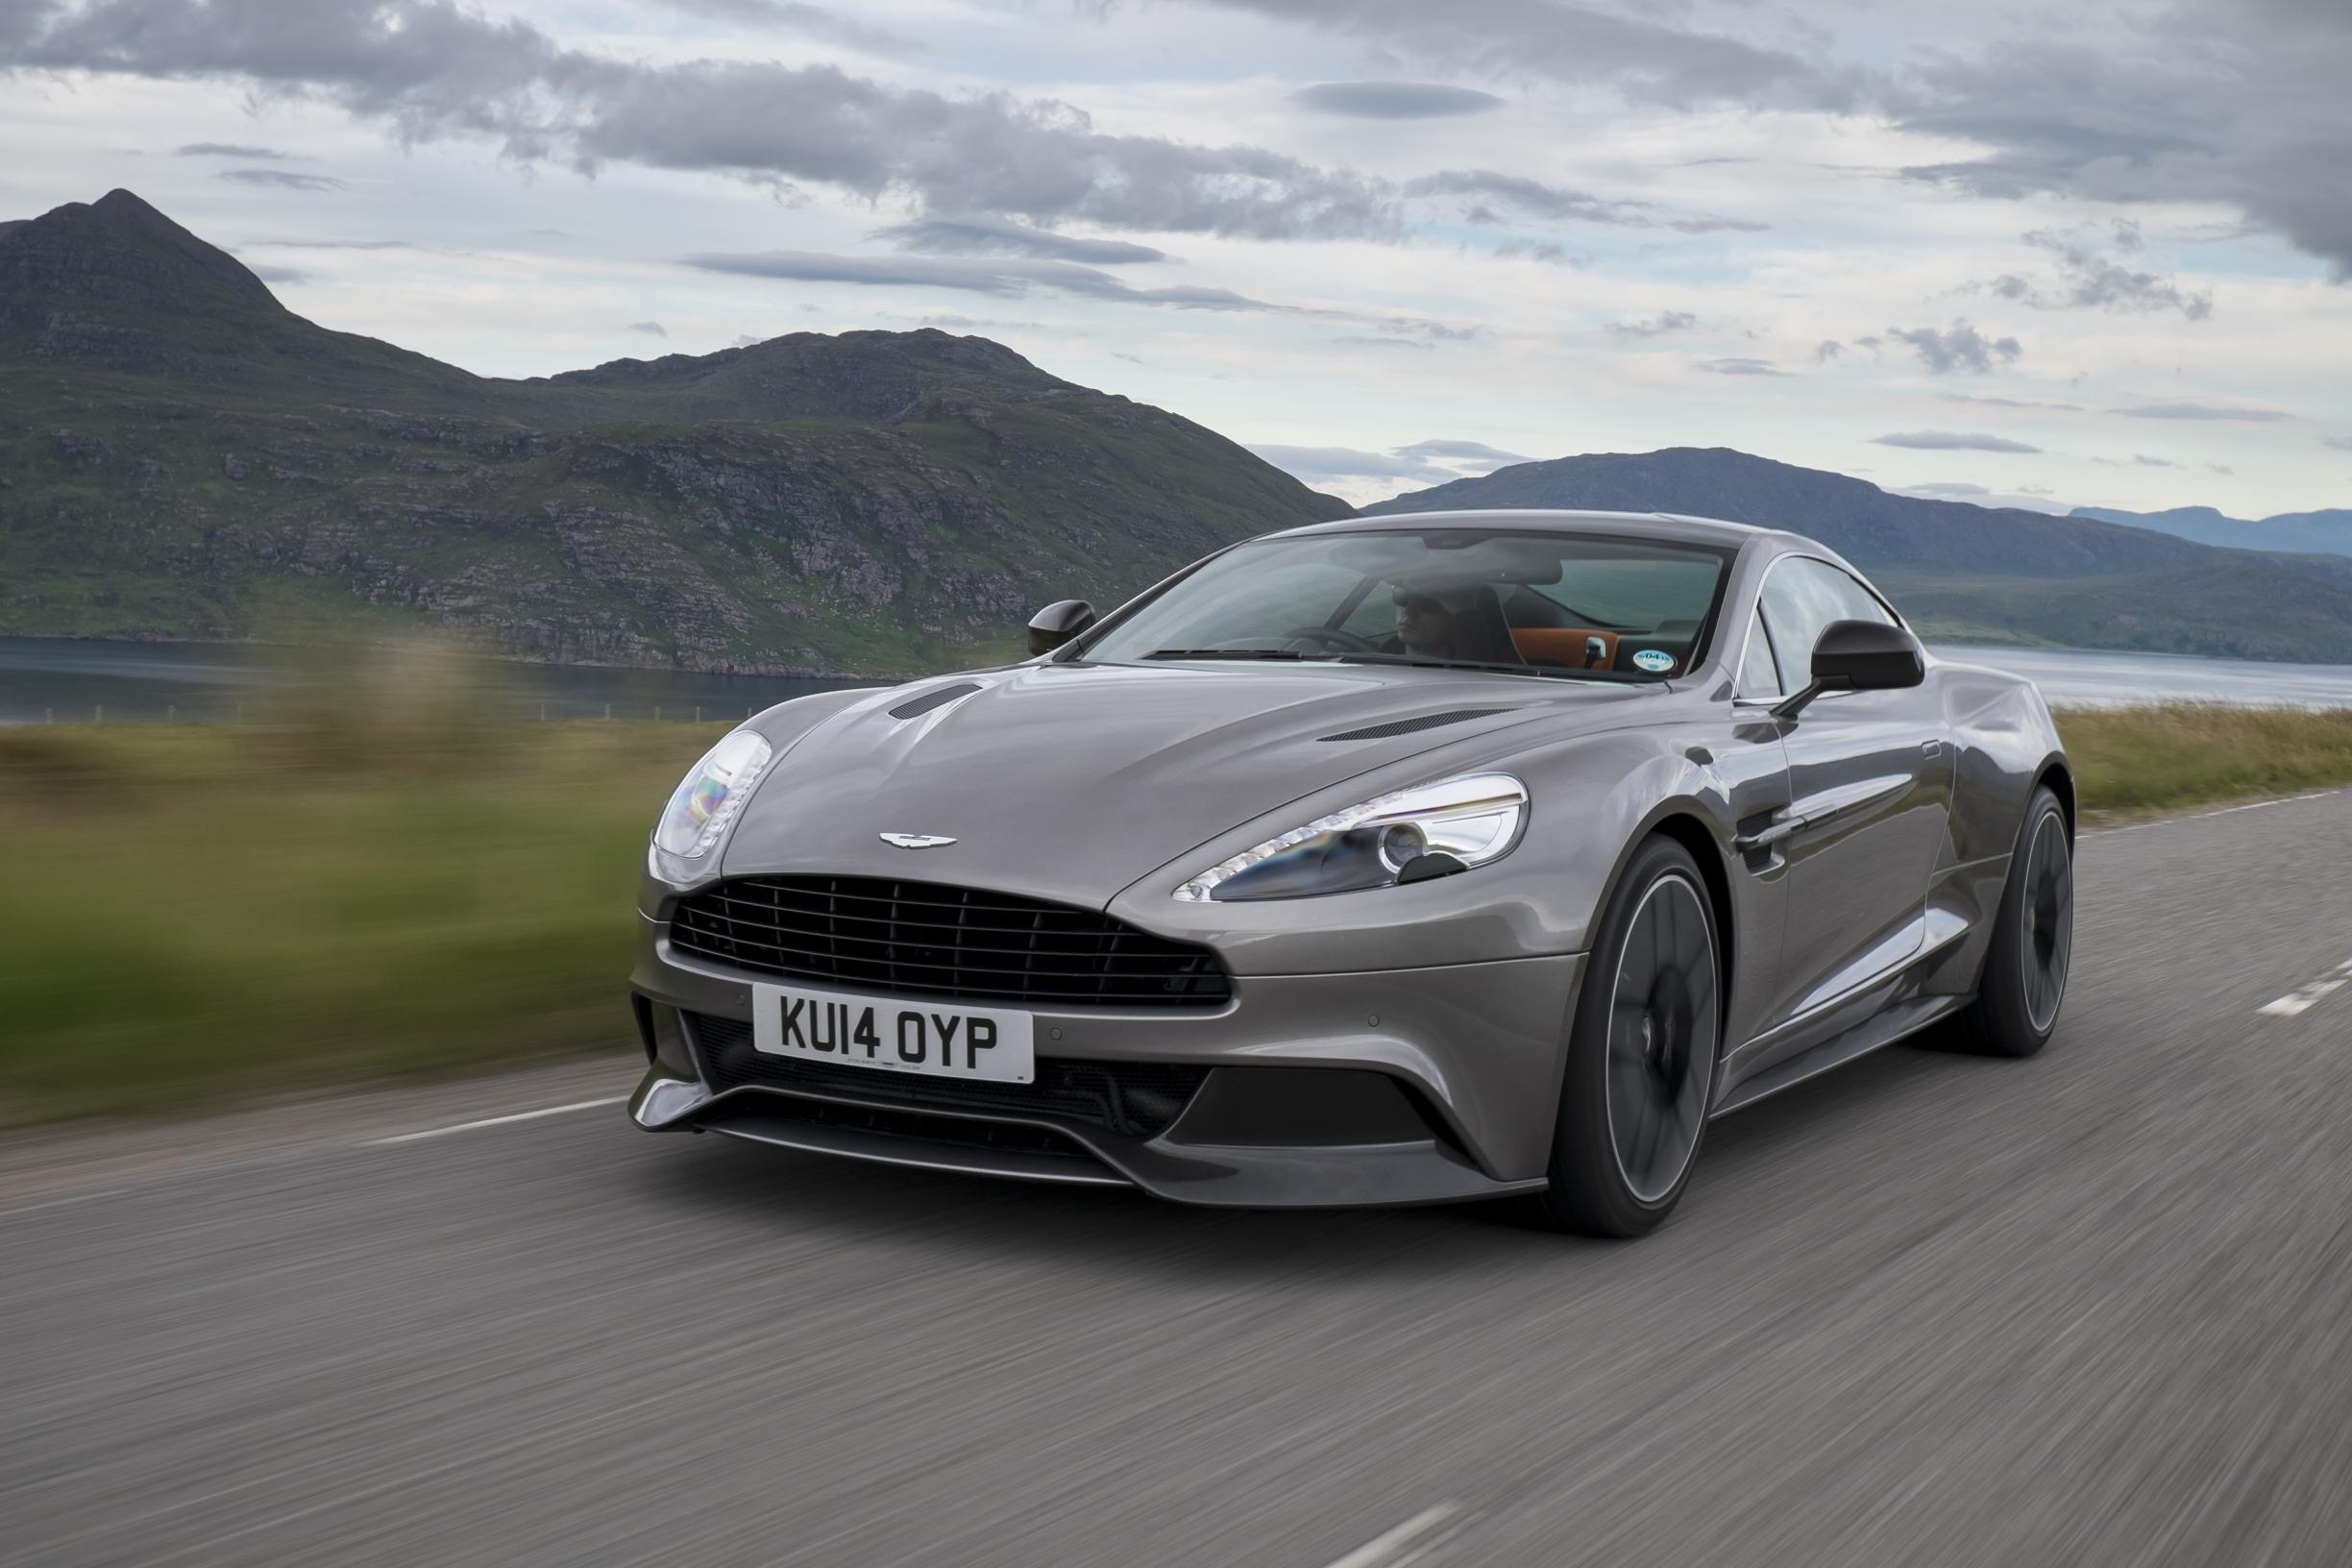 Aston Martin Db9 Vanquish Dynamic Enhancements For Aston Martin Vanquish And Rapide S Usa